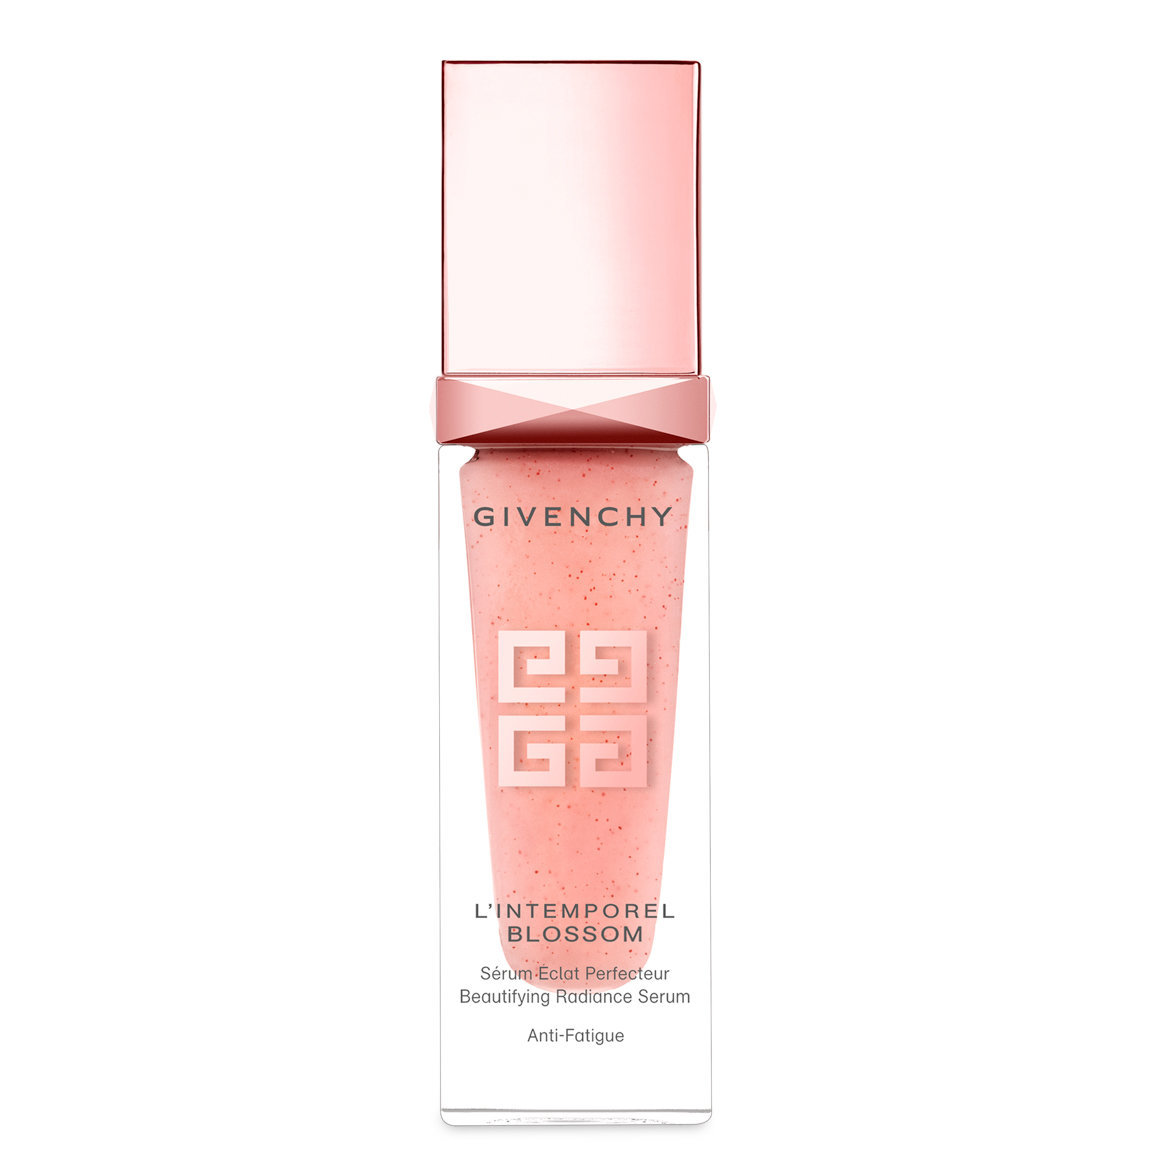 Givenchy L'Intemporel Blossom Beautifying Radiance Serum Anti-Fatigue alternative view 1 - product swatch.